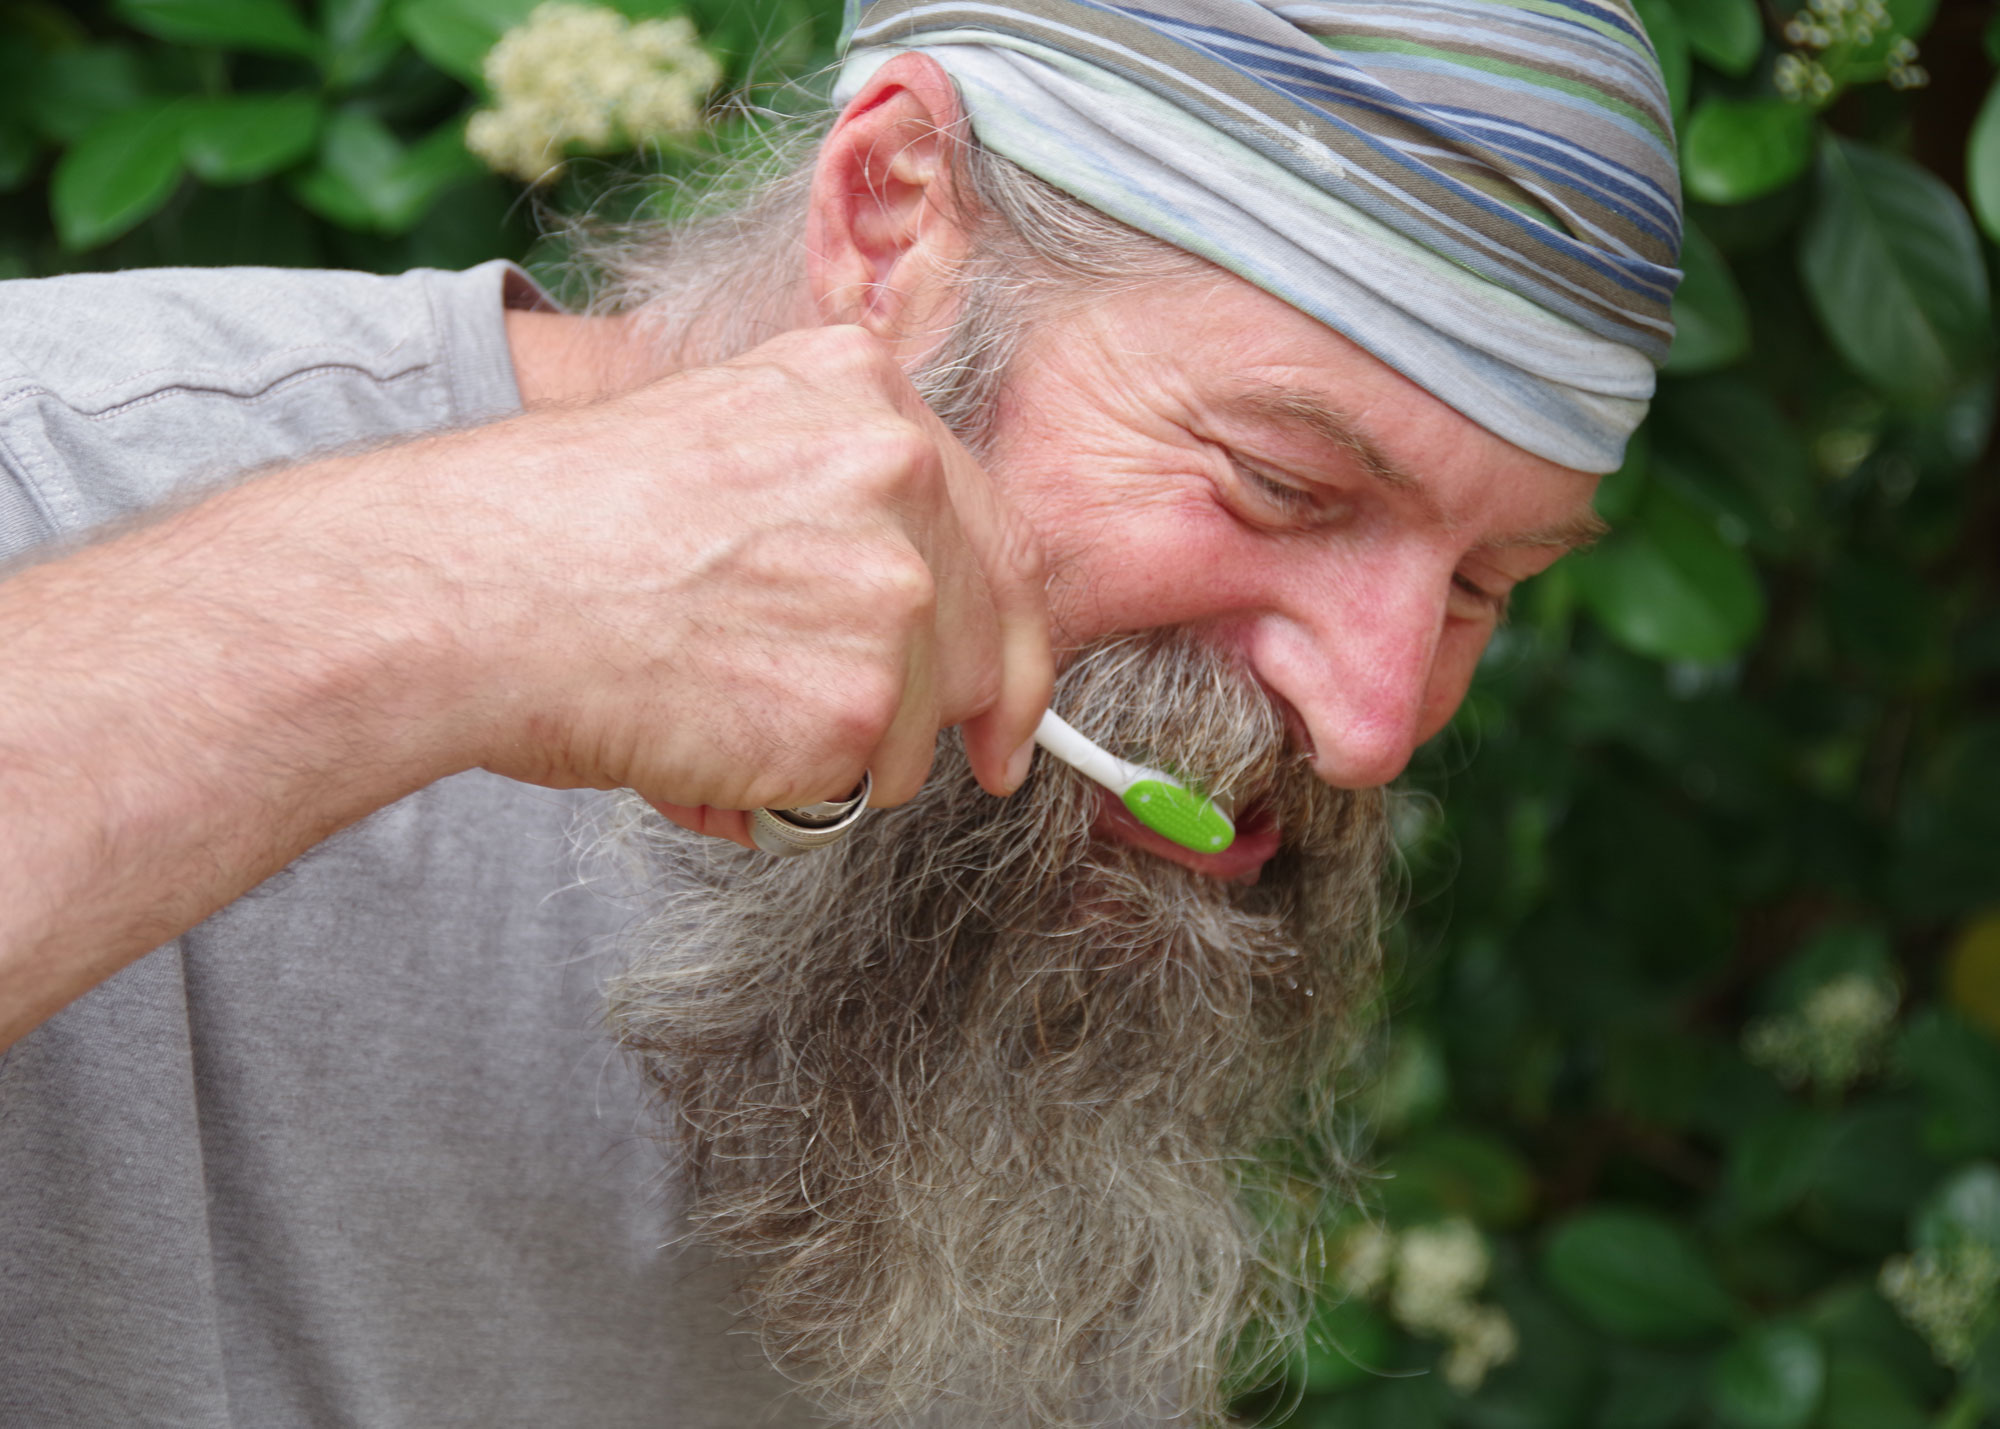 Hikers should brush their teeth 2 to 3 times per day, just as they would at home.   Credit: Karen Miller